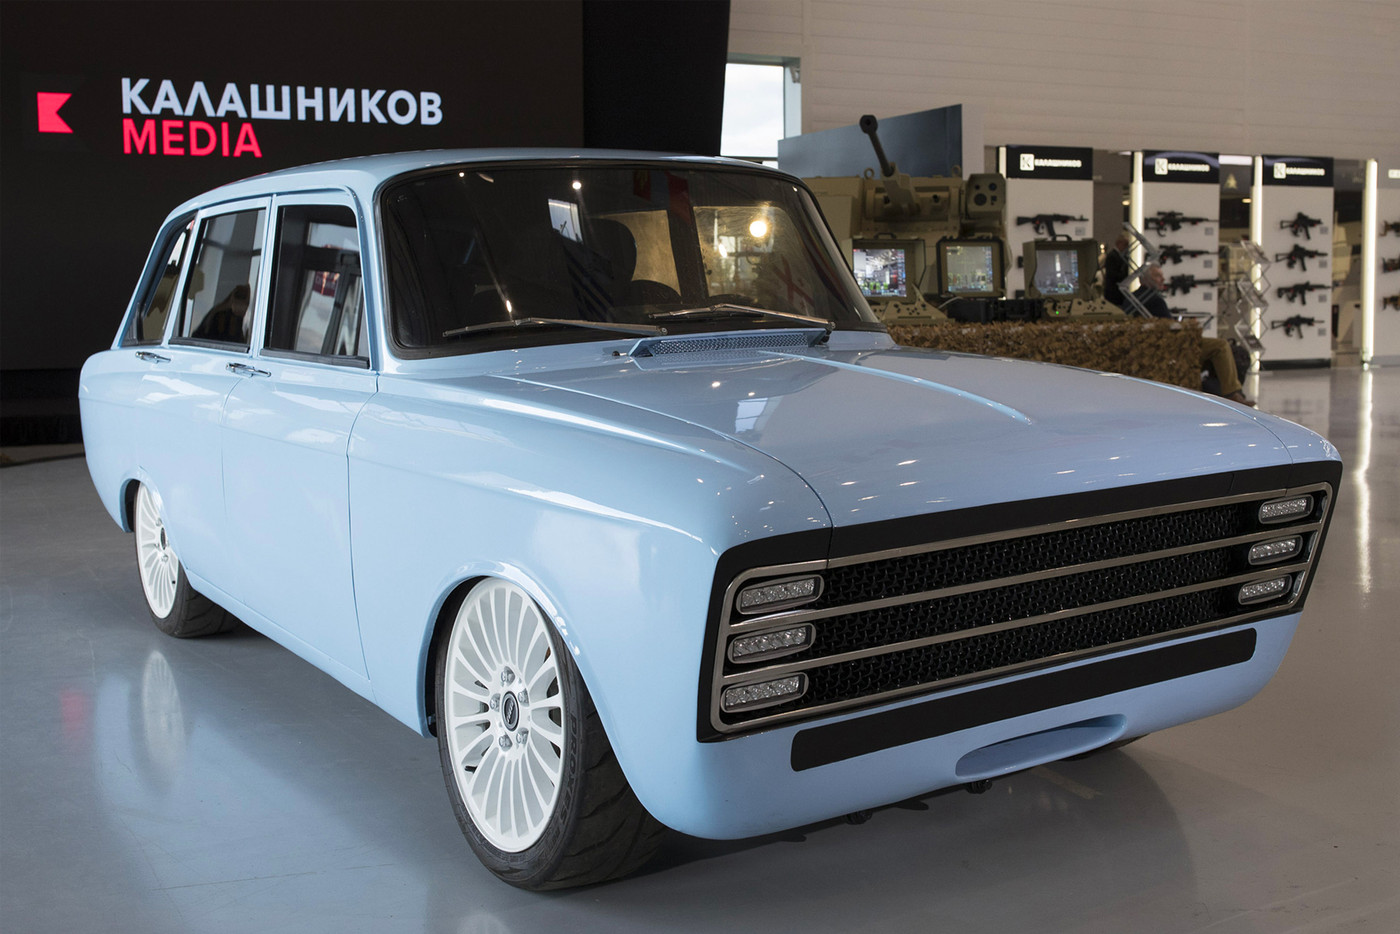 https_hypebeast.comimage201808kalashnikov-electric-supercar-cv-1-prototype-izh-2125-kombi-001